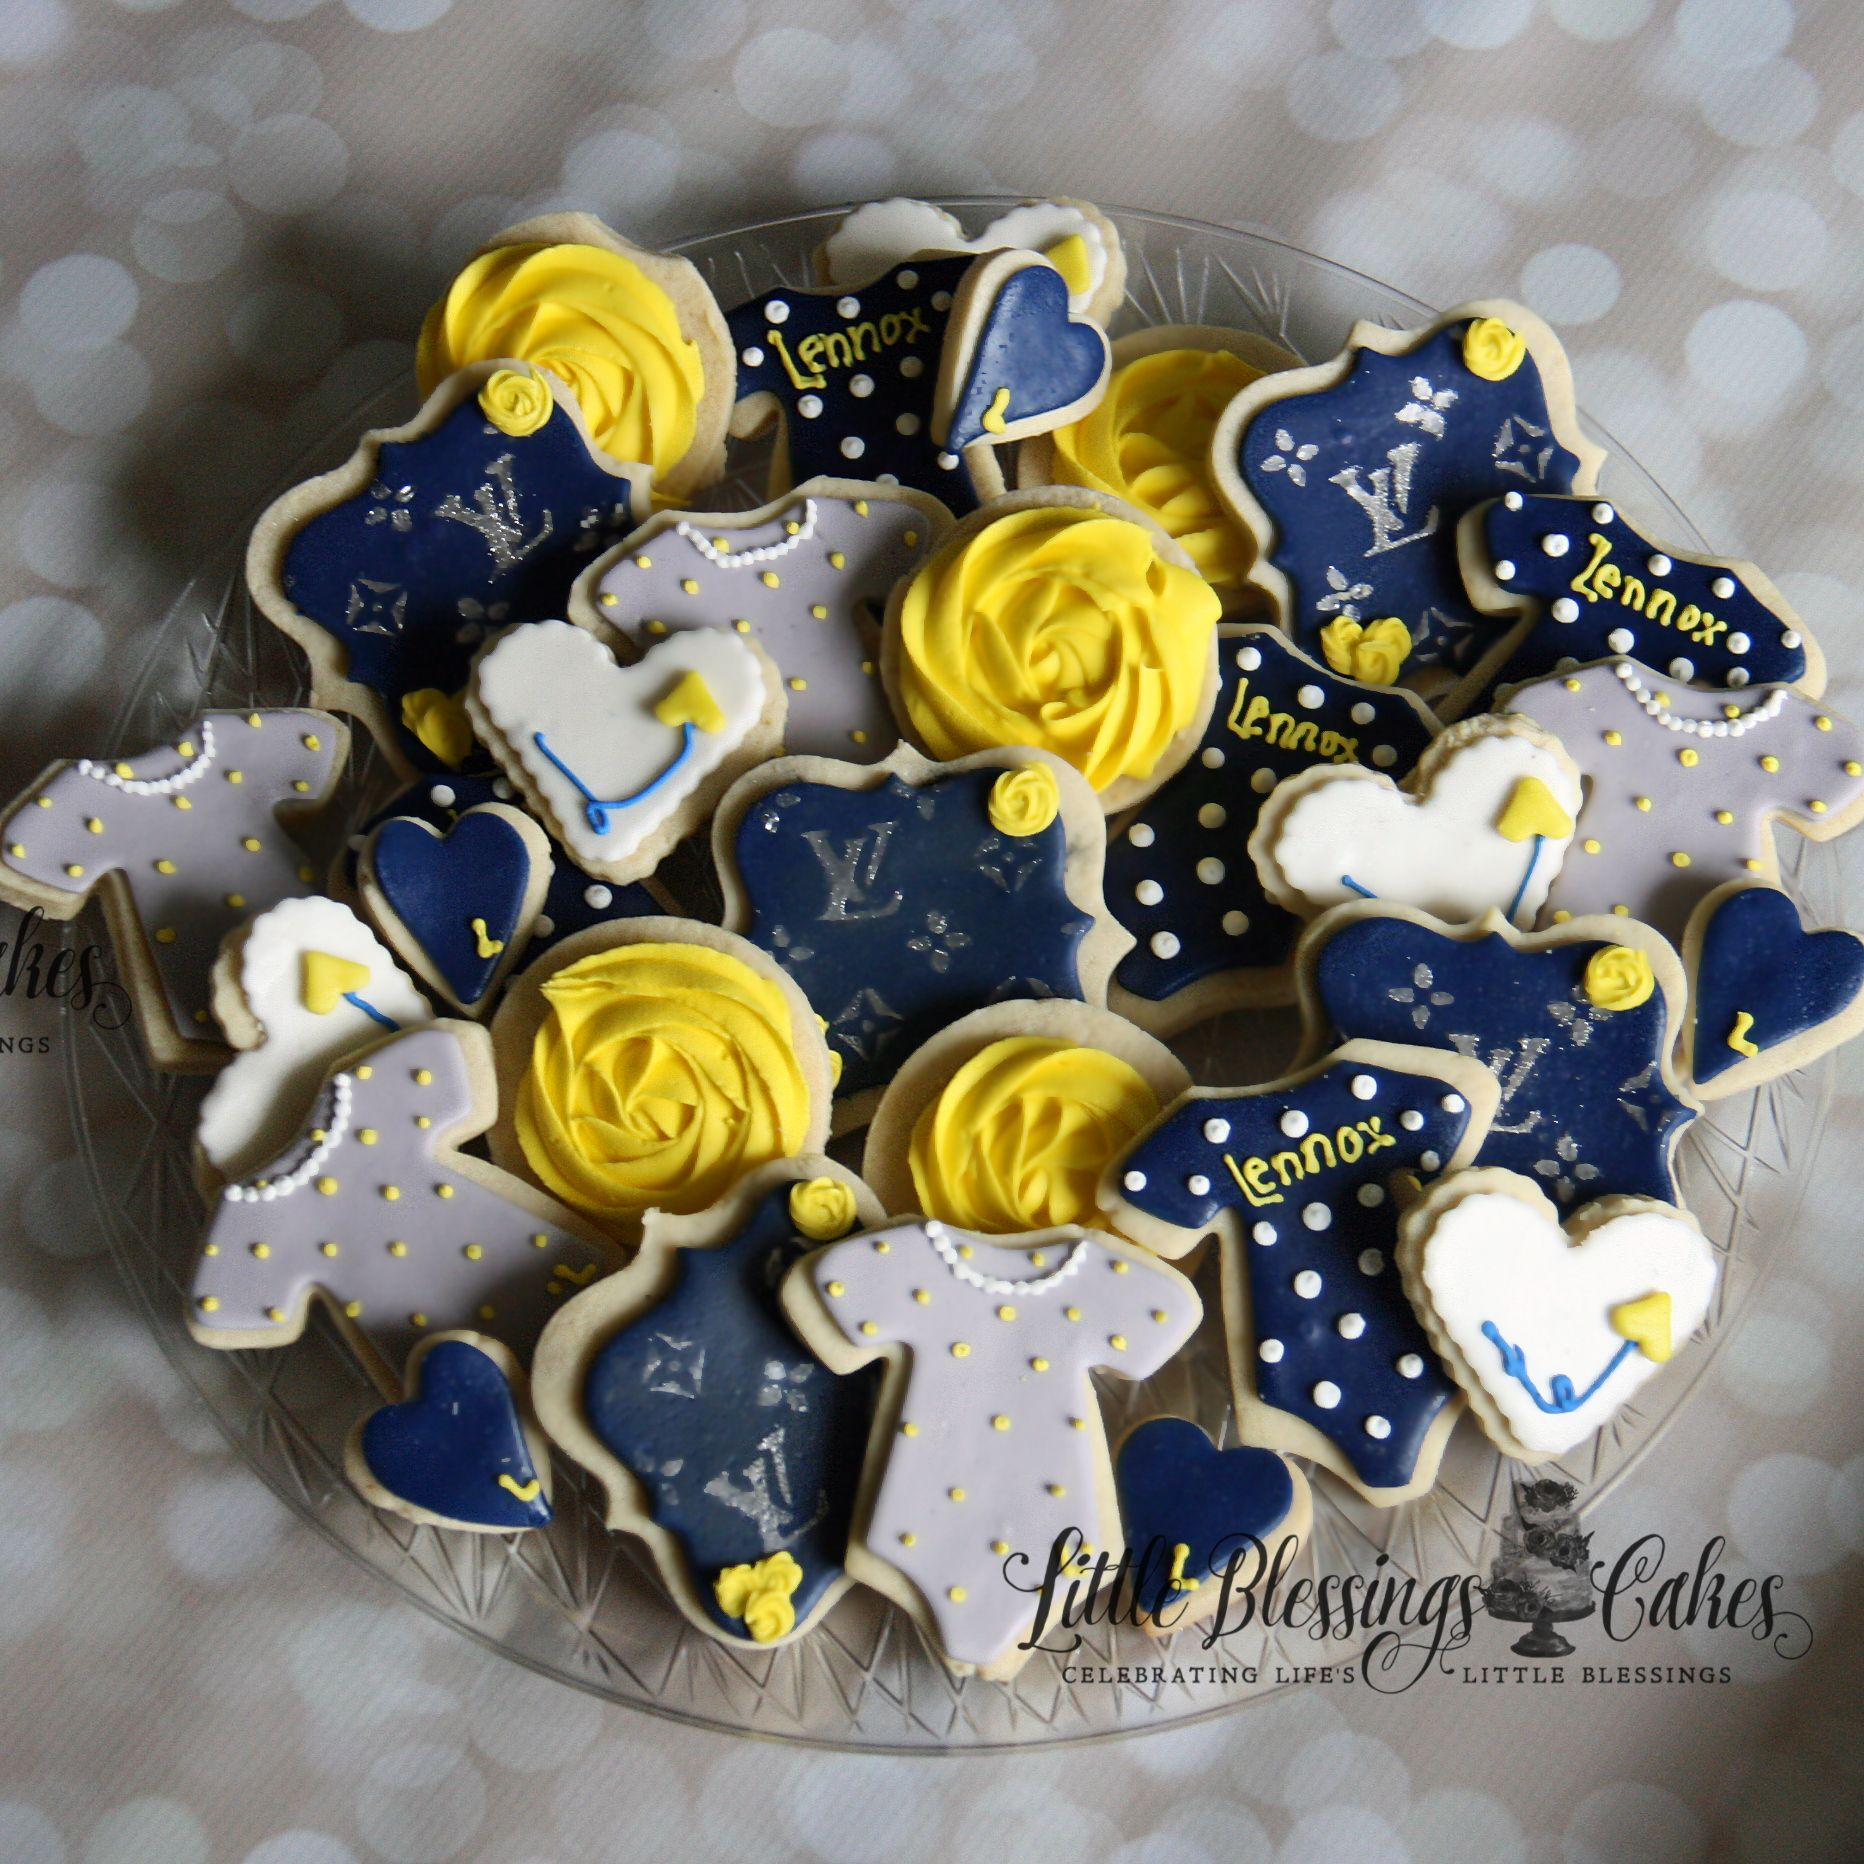 Gourmet couture designer baby shower cookies. Yellow and Navy LV DFW DALLAS FORT WORTH CAKES